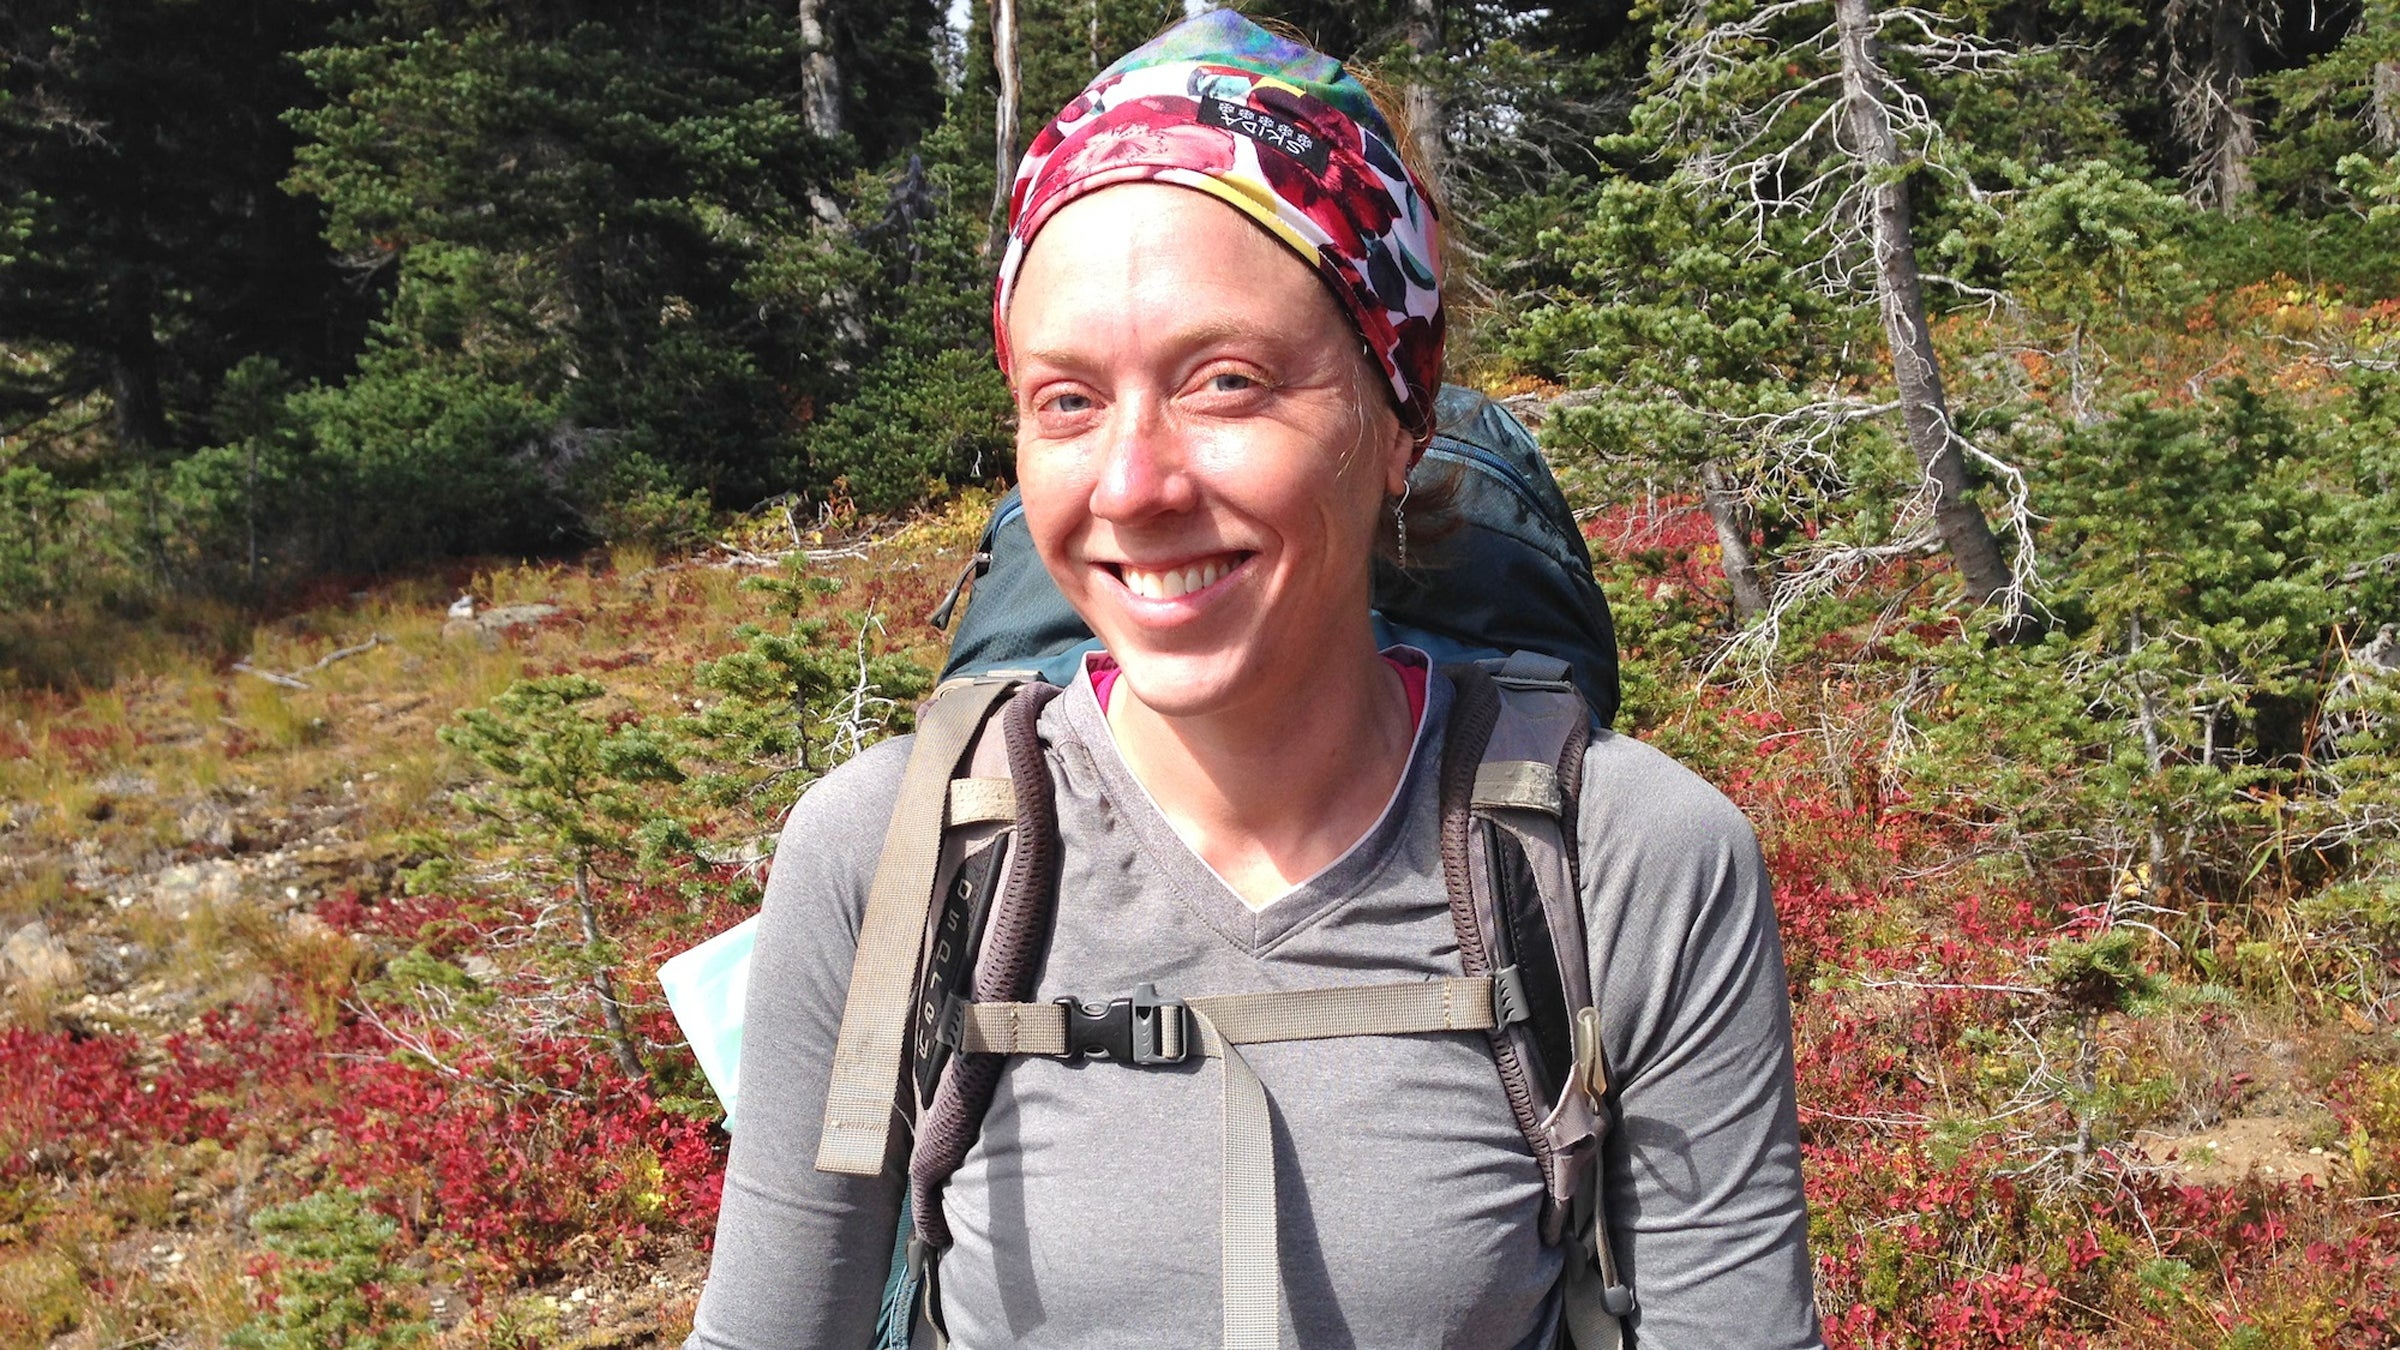 """Emily Ketty, 30 Trail Name: Pancakes  Lake Placid, New York """"I'm stronger than I think. I love to eat: Corn Nuts, Twizzlers red vines—all junk. I still love Knorr sides. Cous-cous forever. Pop-Tarts need some sort of container though. They crumble too easily in the foil wrapper. I'll still continue to eat them but they'd be better if they were in one piece."""""""